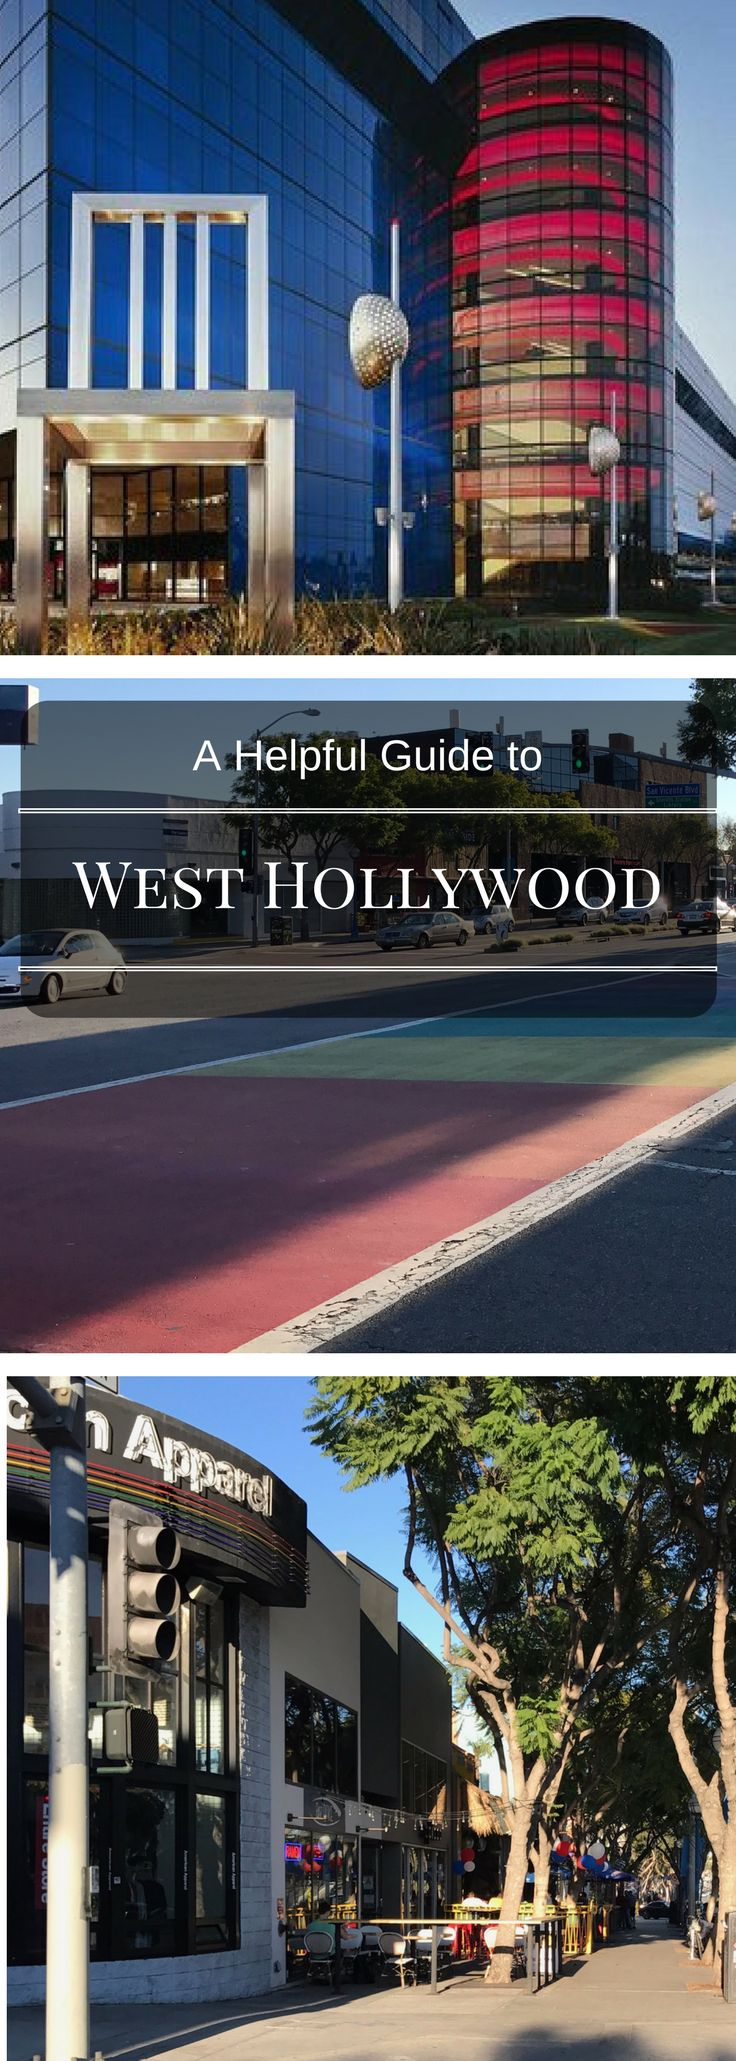 West Hollywood | Guide to West Hollywood | Things to do in West Hollywood | West Hollywood Events | What to do in West Hollywood